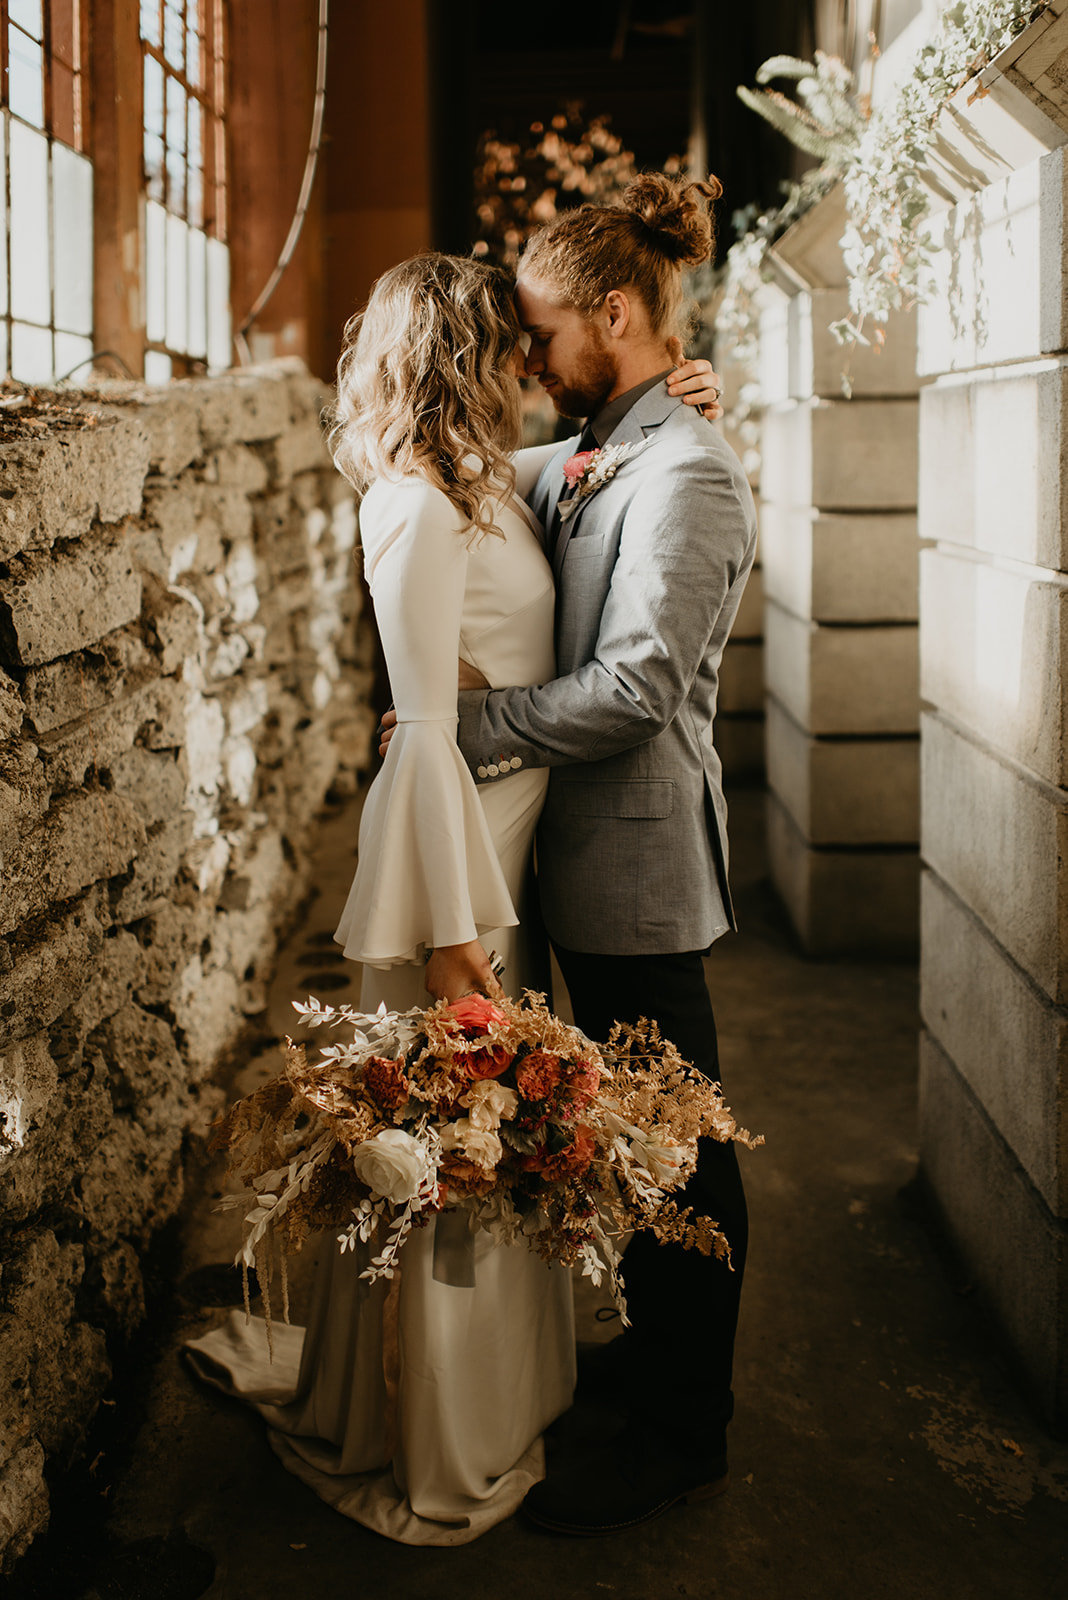 Britty + Beau - Elopement - The Ruins_ Seattle_ WA - Kamra Fuller Photography - Runaway With Me Elopement Collective-155